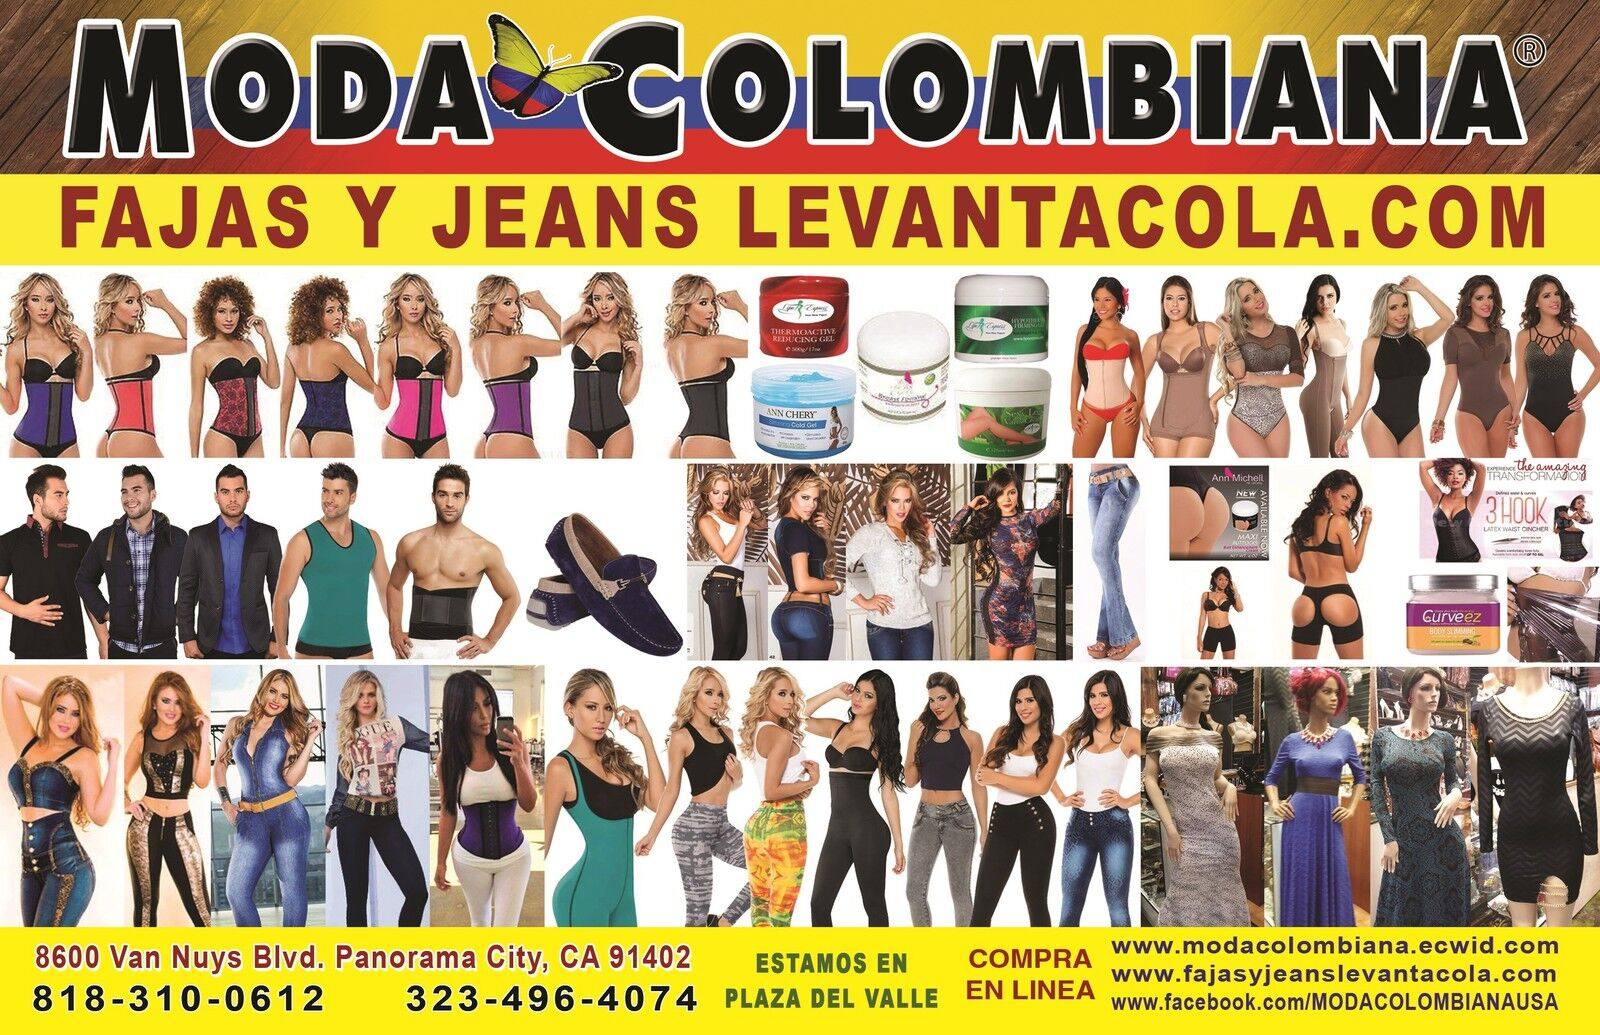 MODA COLOMBIANA USA